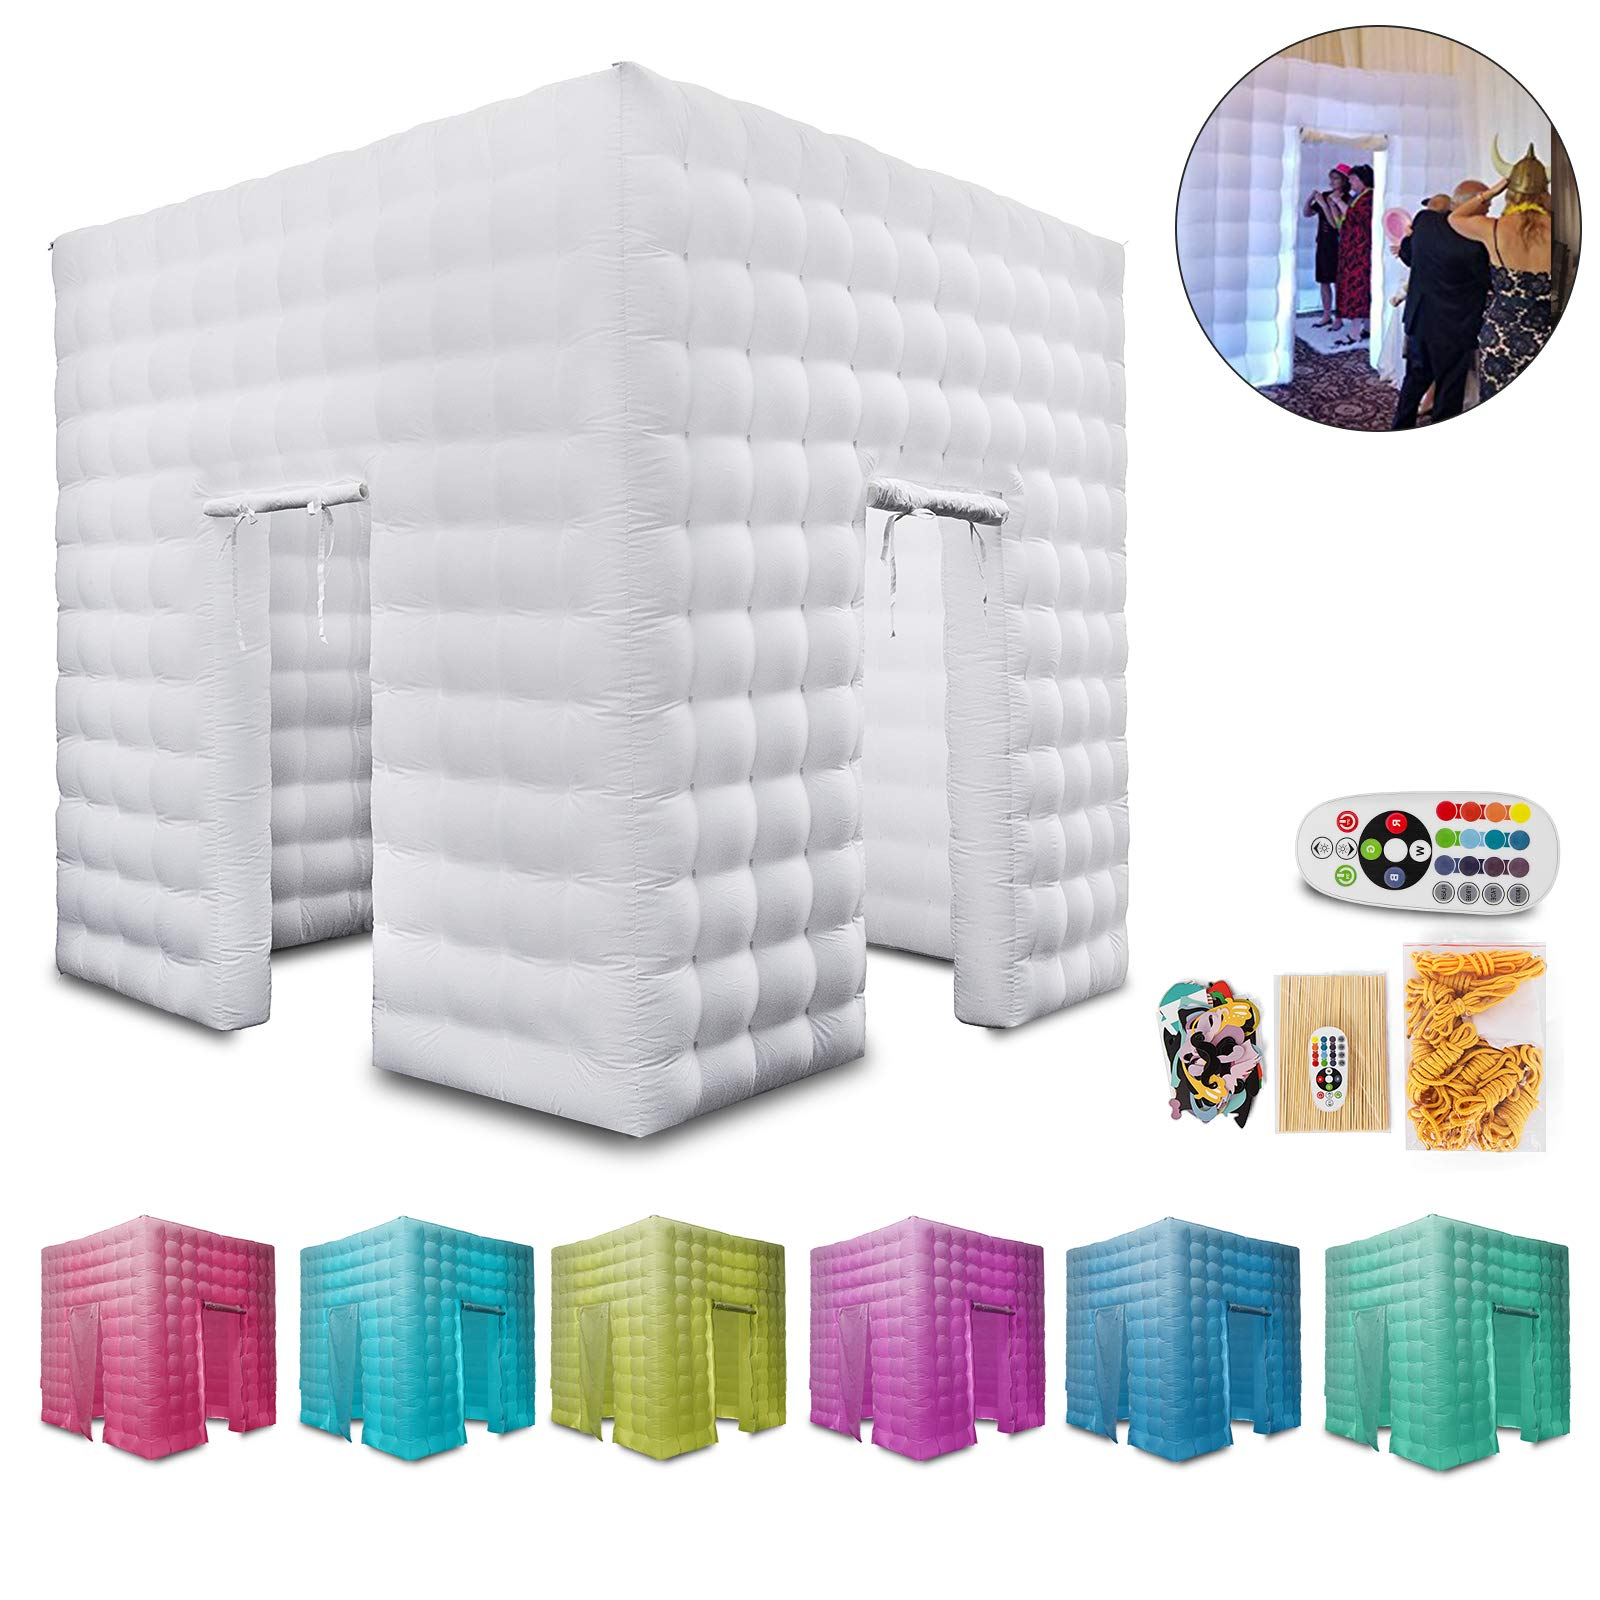 Happybuy Inflatable Portable Photo Booth Enclosure with LED Changing Lights Inner Air Blower and Controller for Wedding Party Promotions Advertising Photo Booth Tent Cube (Two Door) by Happybuy (Image #1)